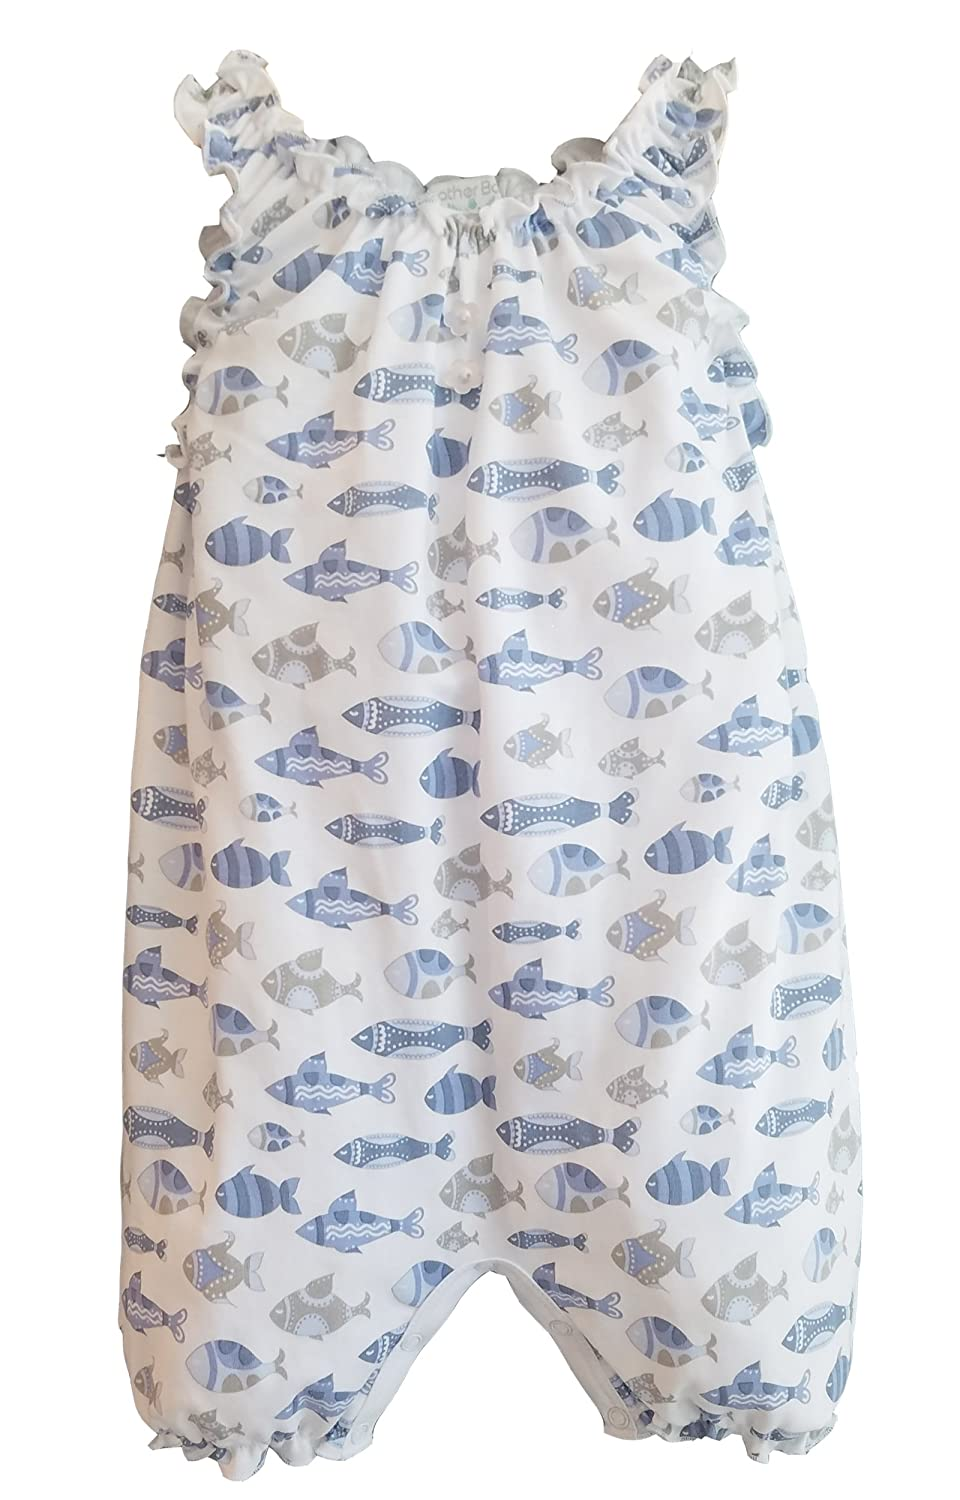 宅配 フェザーベビーガールズ服PimaコットンノースリーブワンピーススーツバブルShortieベビーロンパース on B07CHQNVXL Fish - Fish Blue on White 3 - Blue 6 Months 3 - 6 Months|Fish - Blue on White, 落合町:76970169 --- martinemoeykens-com.access.secure-ssl-servers.info